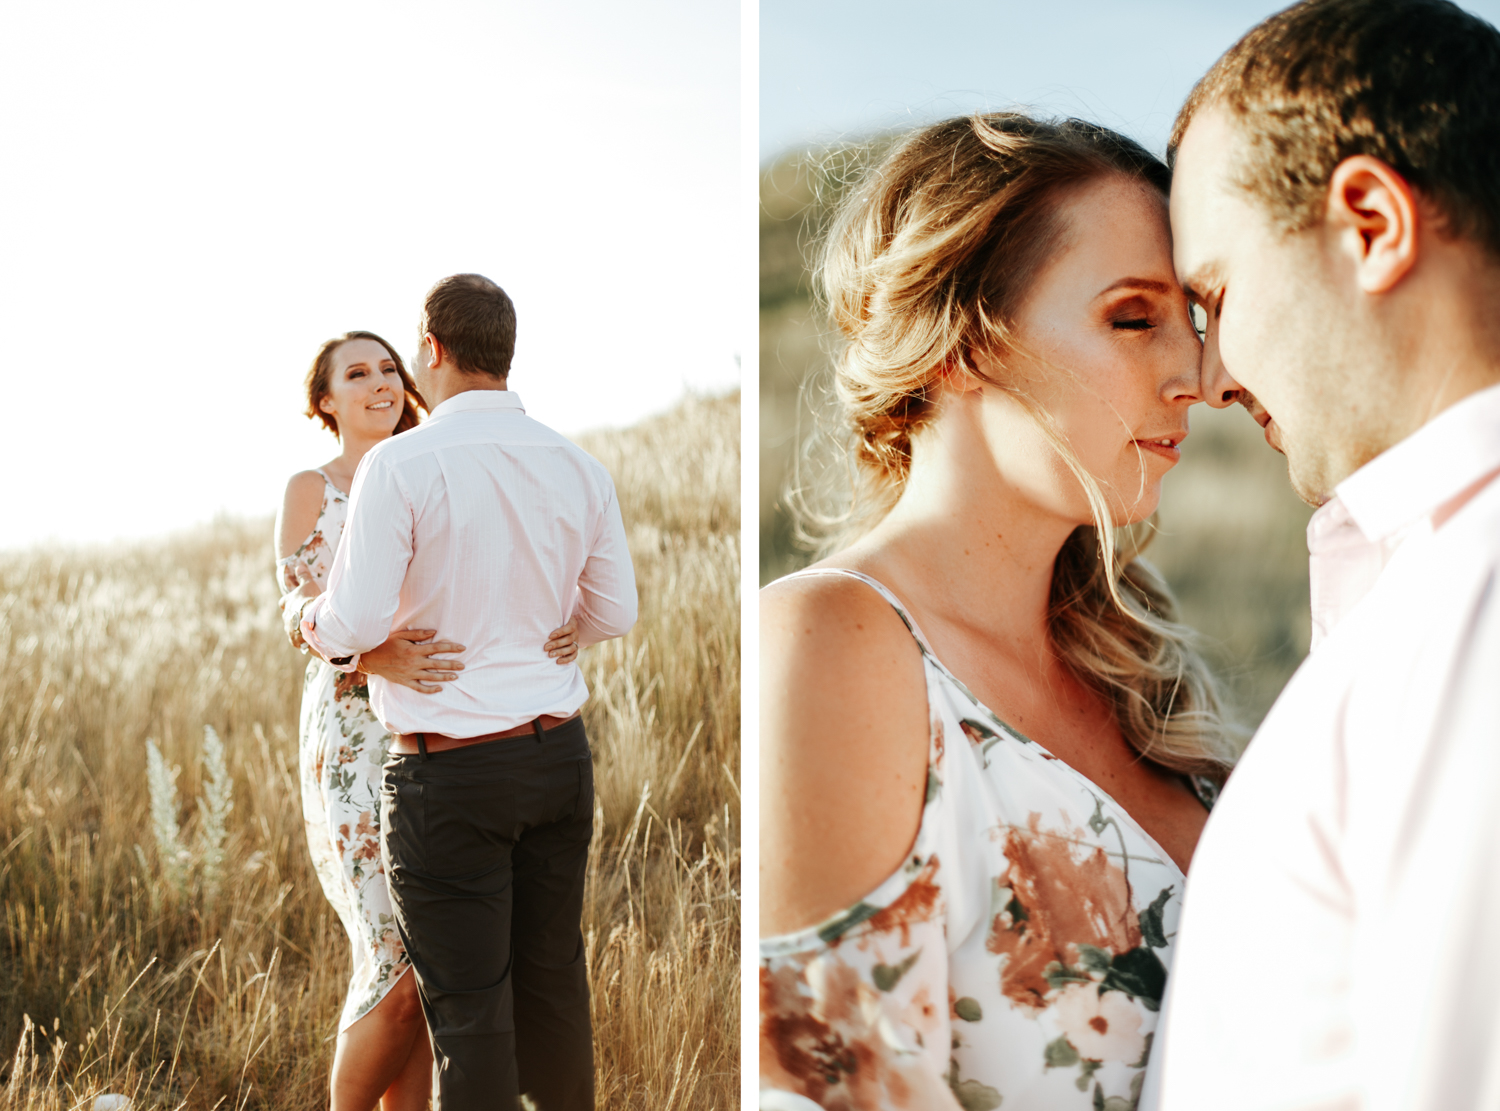 lethbridge-wedding-photographer-love-and-be-loved-photography-katie-kelli-engagement-picture-image-photo-46.jpg